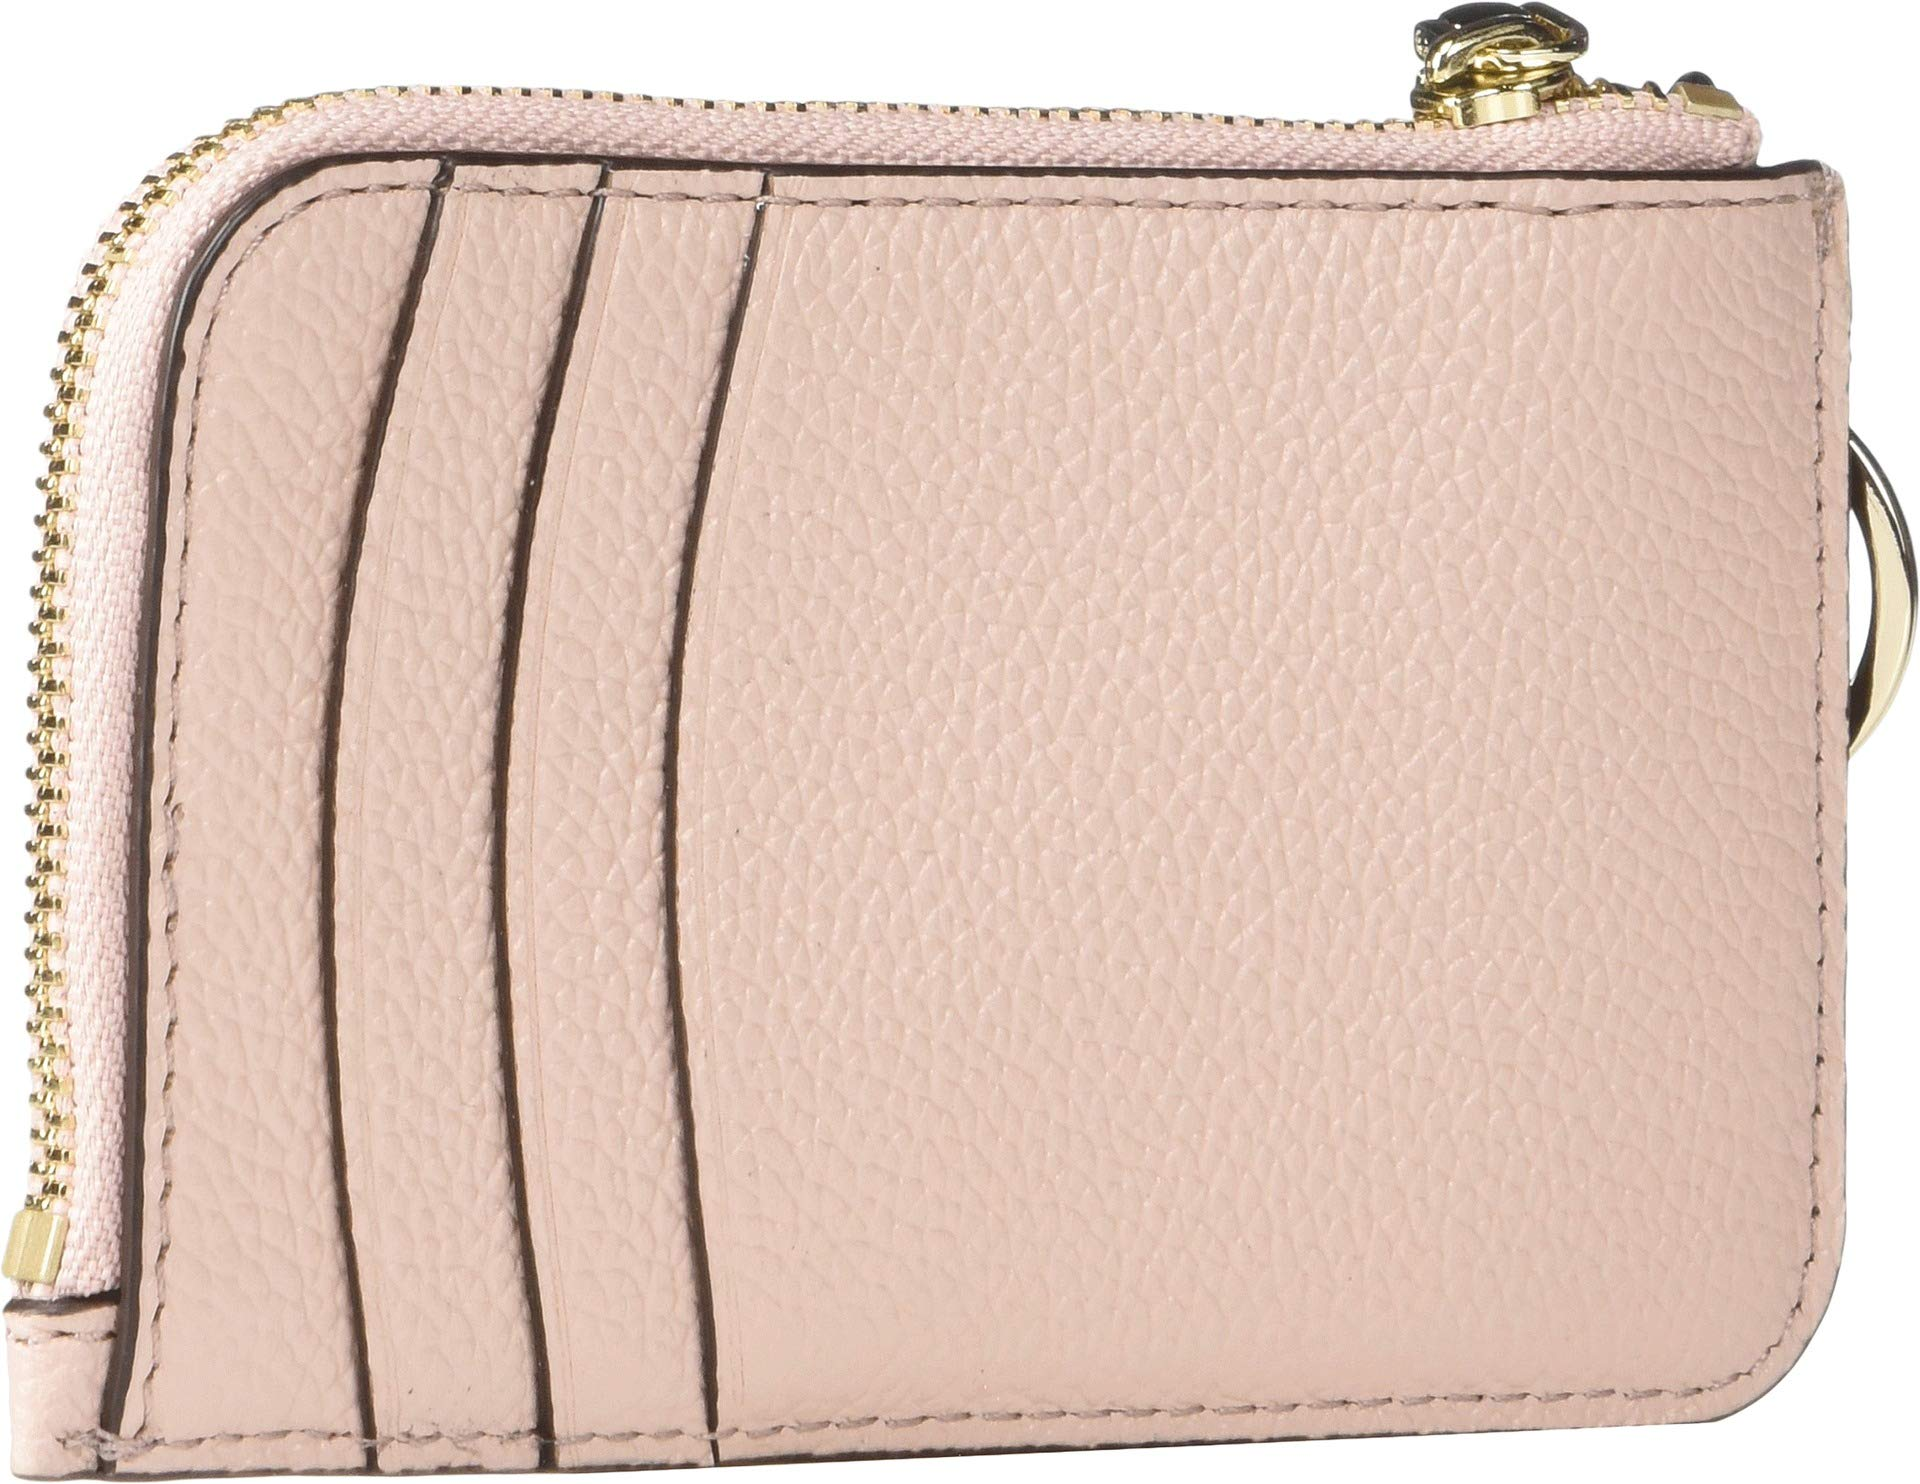 Kate Spade New York Women's Margaux Zip Card Holder, Pale Vellum, One Size by Kate Spade New York (Image #2)